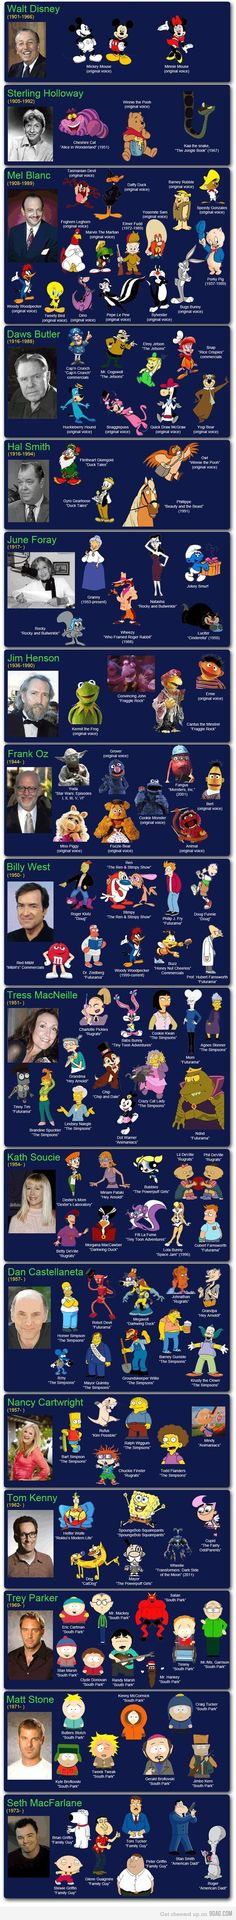 This is so neat! The people behind the voices of characters we all know.